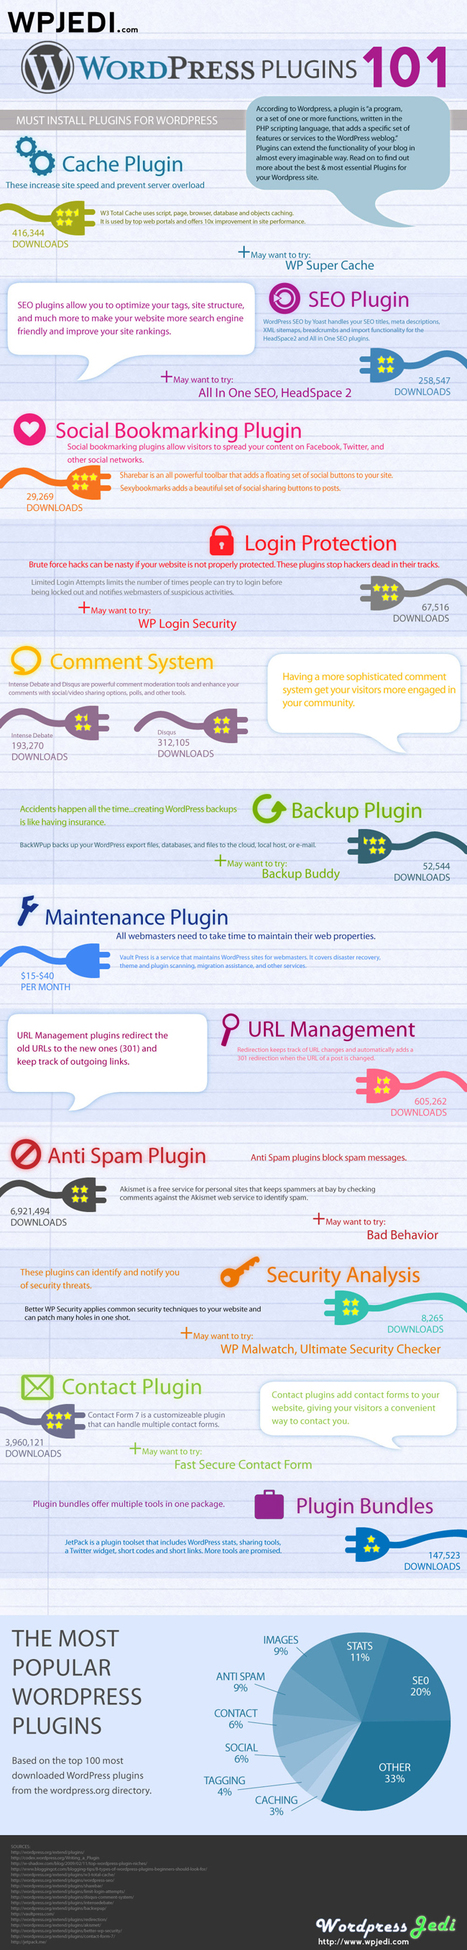 Must have WordPress plugins [infographic] | WordPress Google SEO and Social Media | Scoop.it